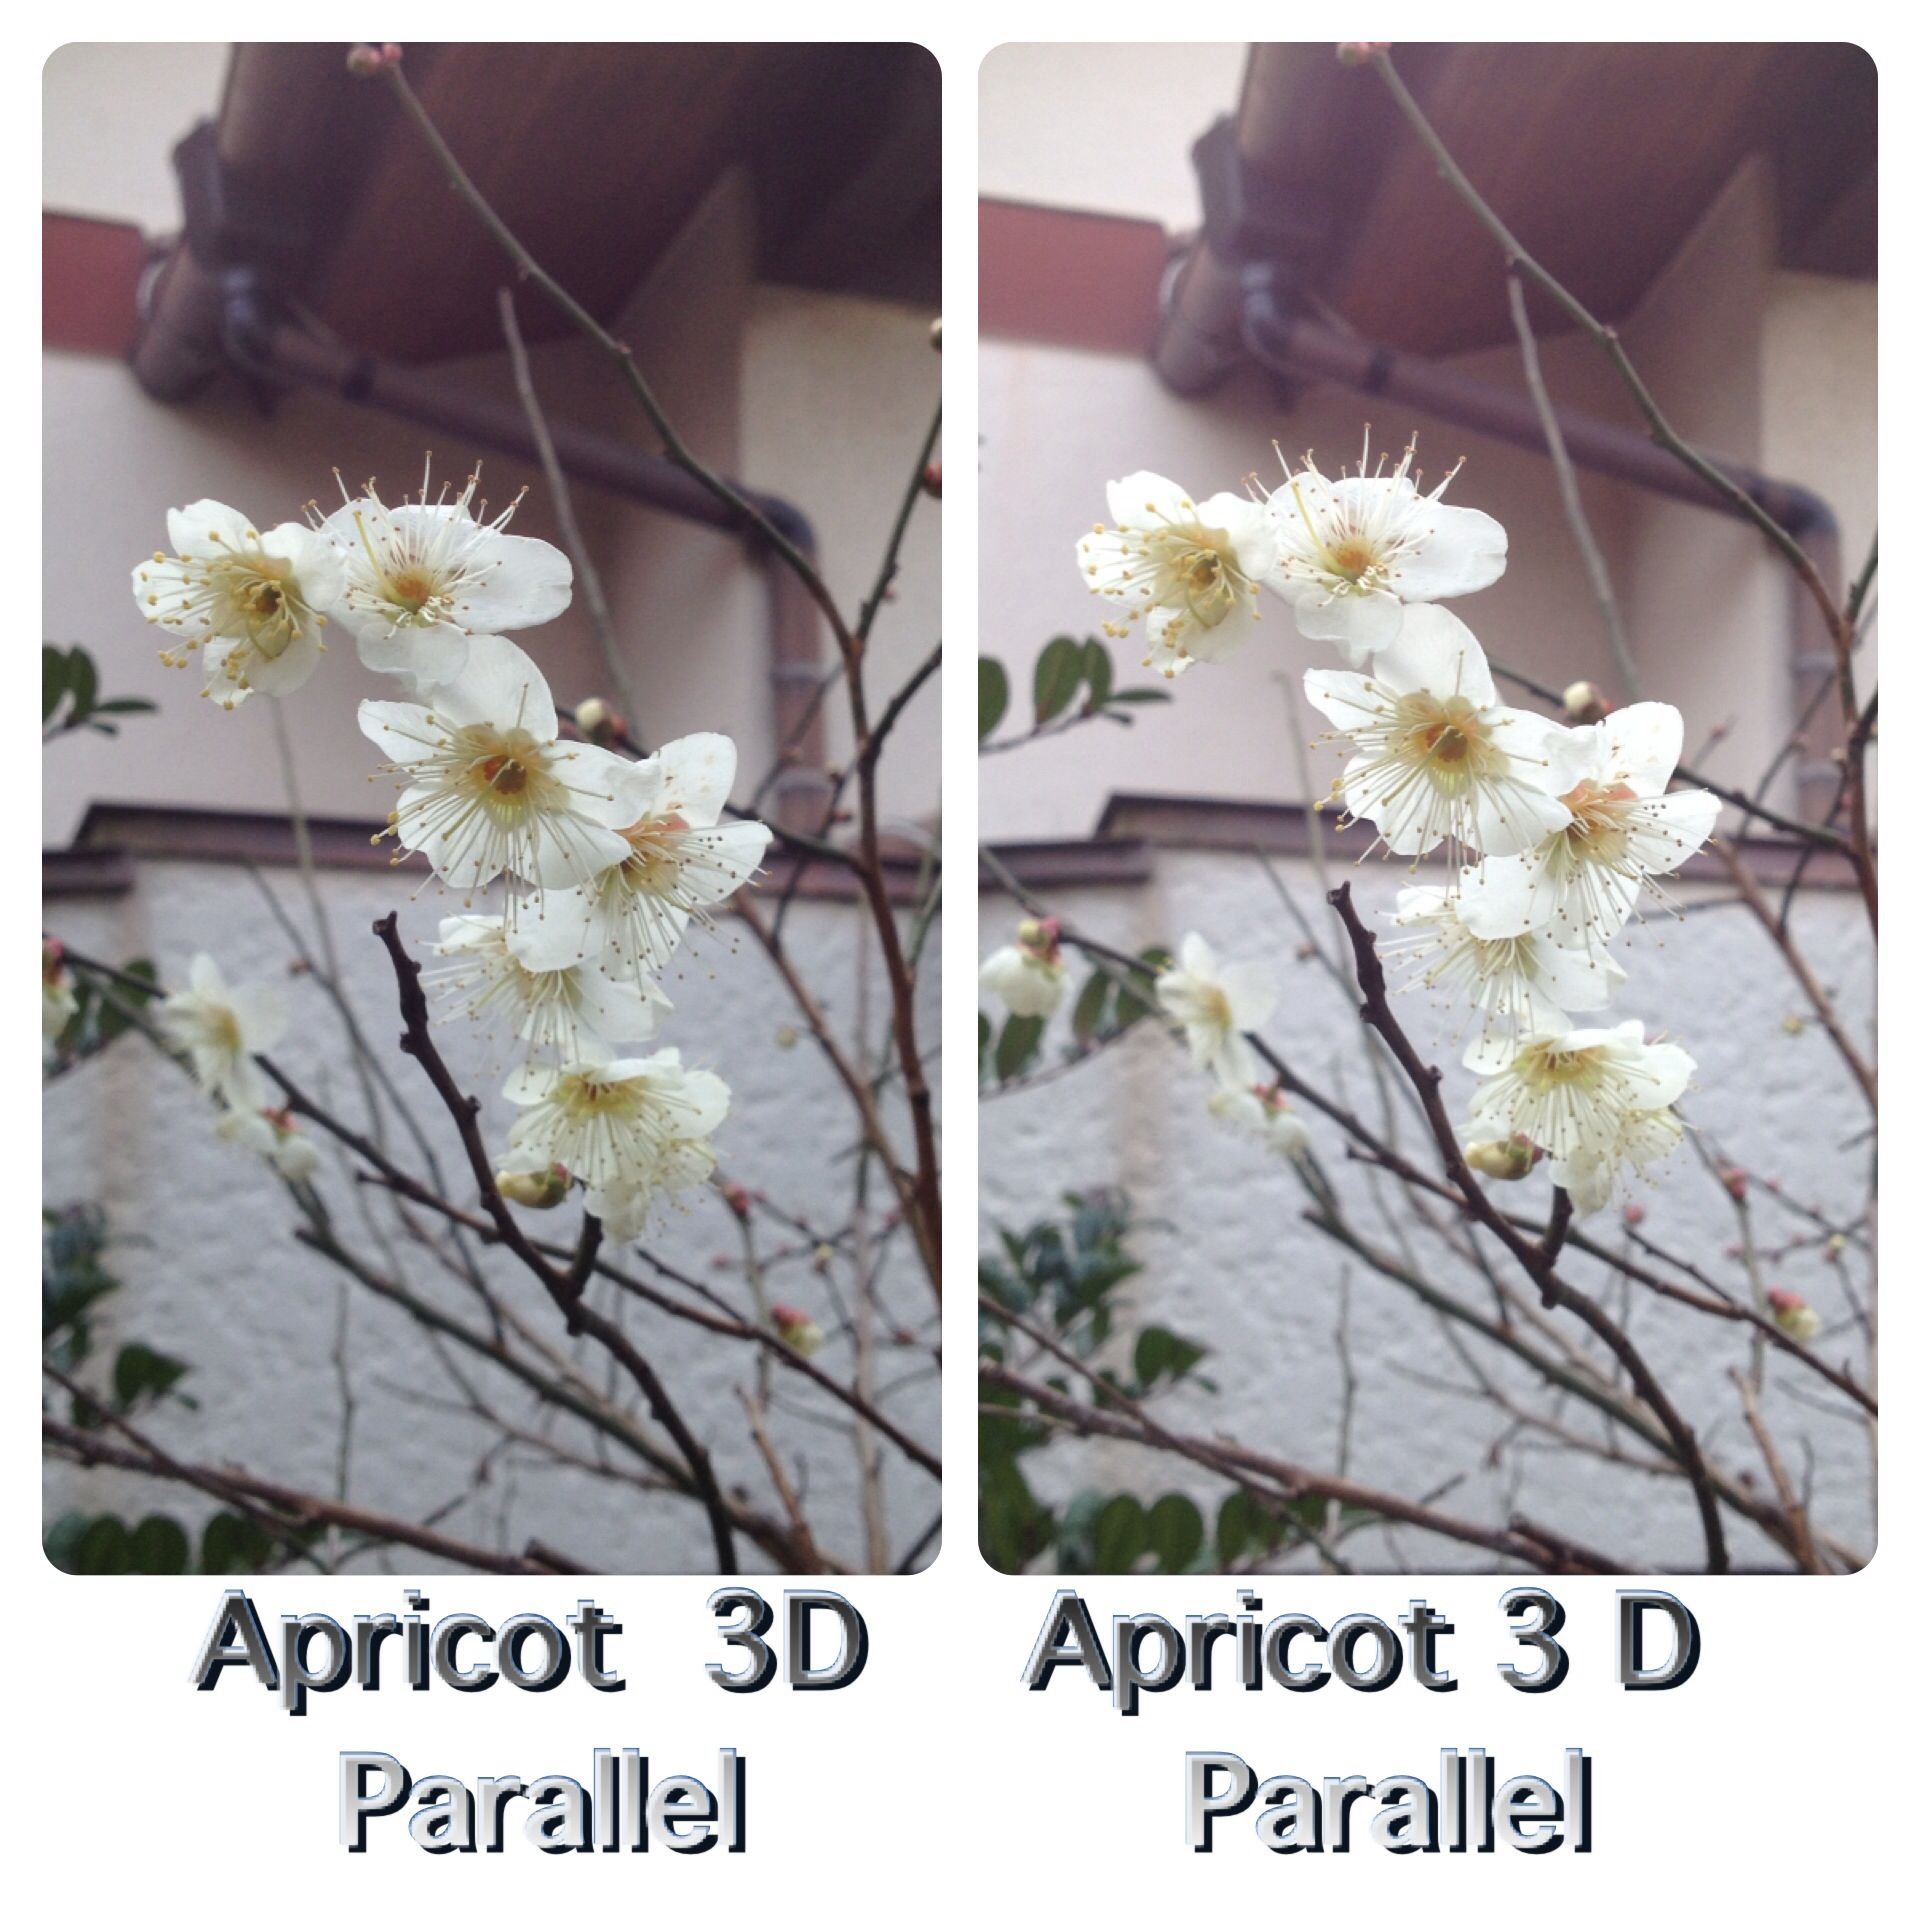 Apricot in 3D by parallel view 白梅3D、平行法で見てください。